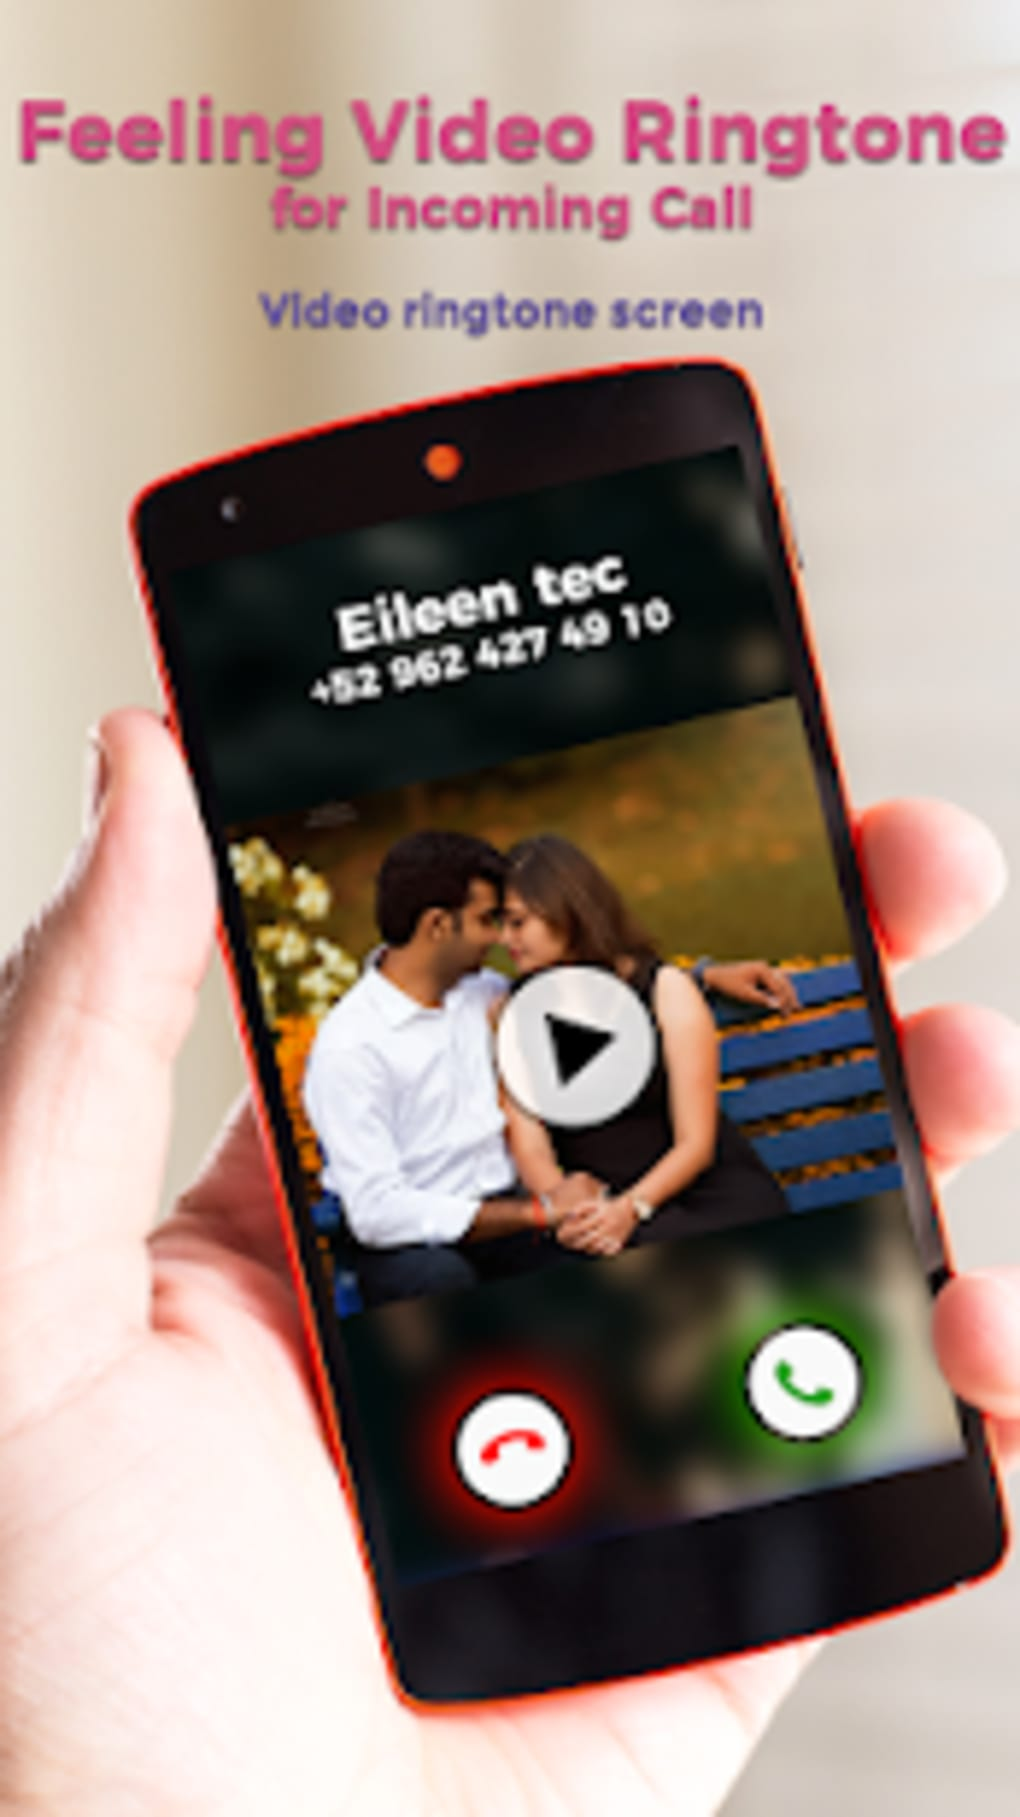 Feeling Video Ringtone for Incoming Call for Android - Download